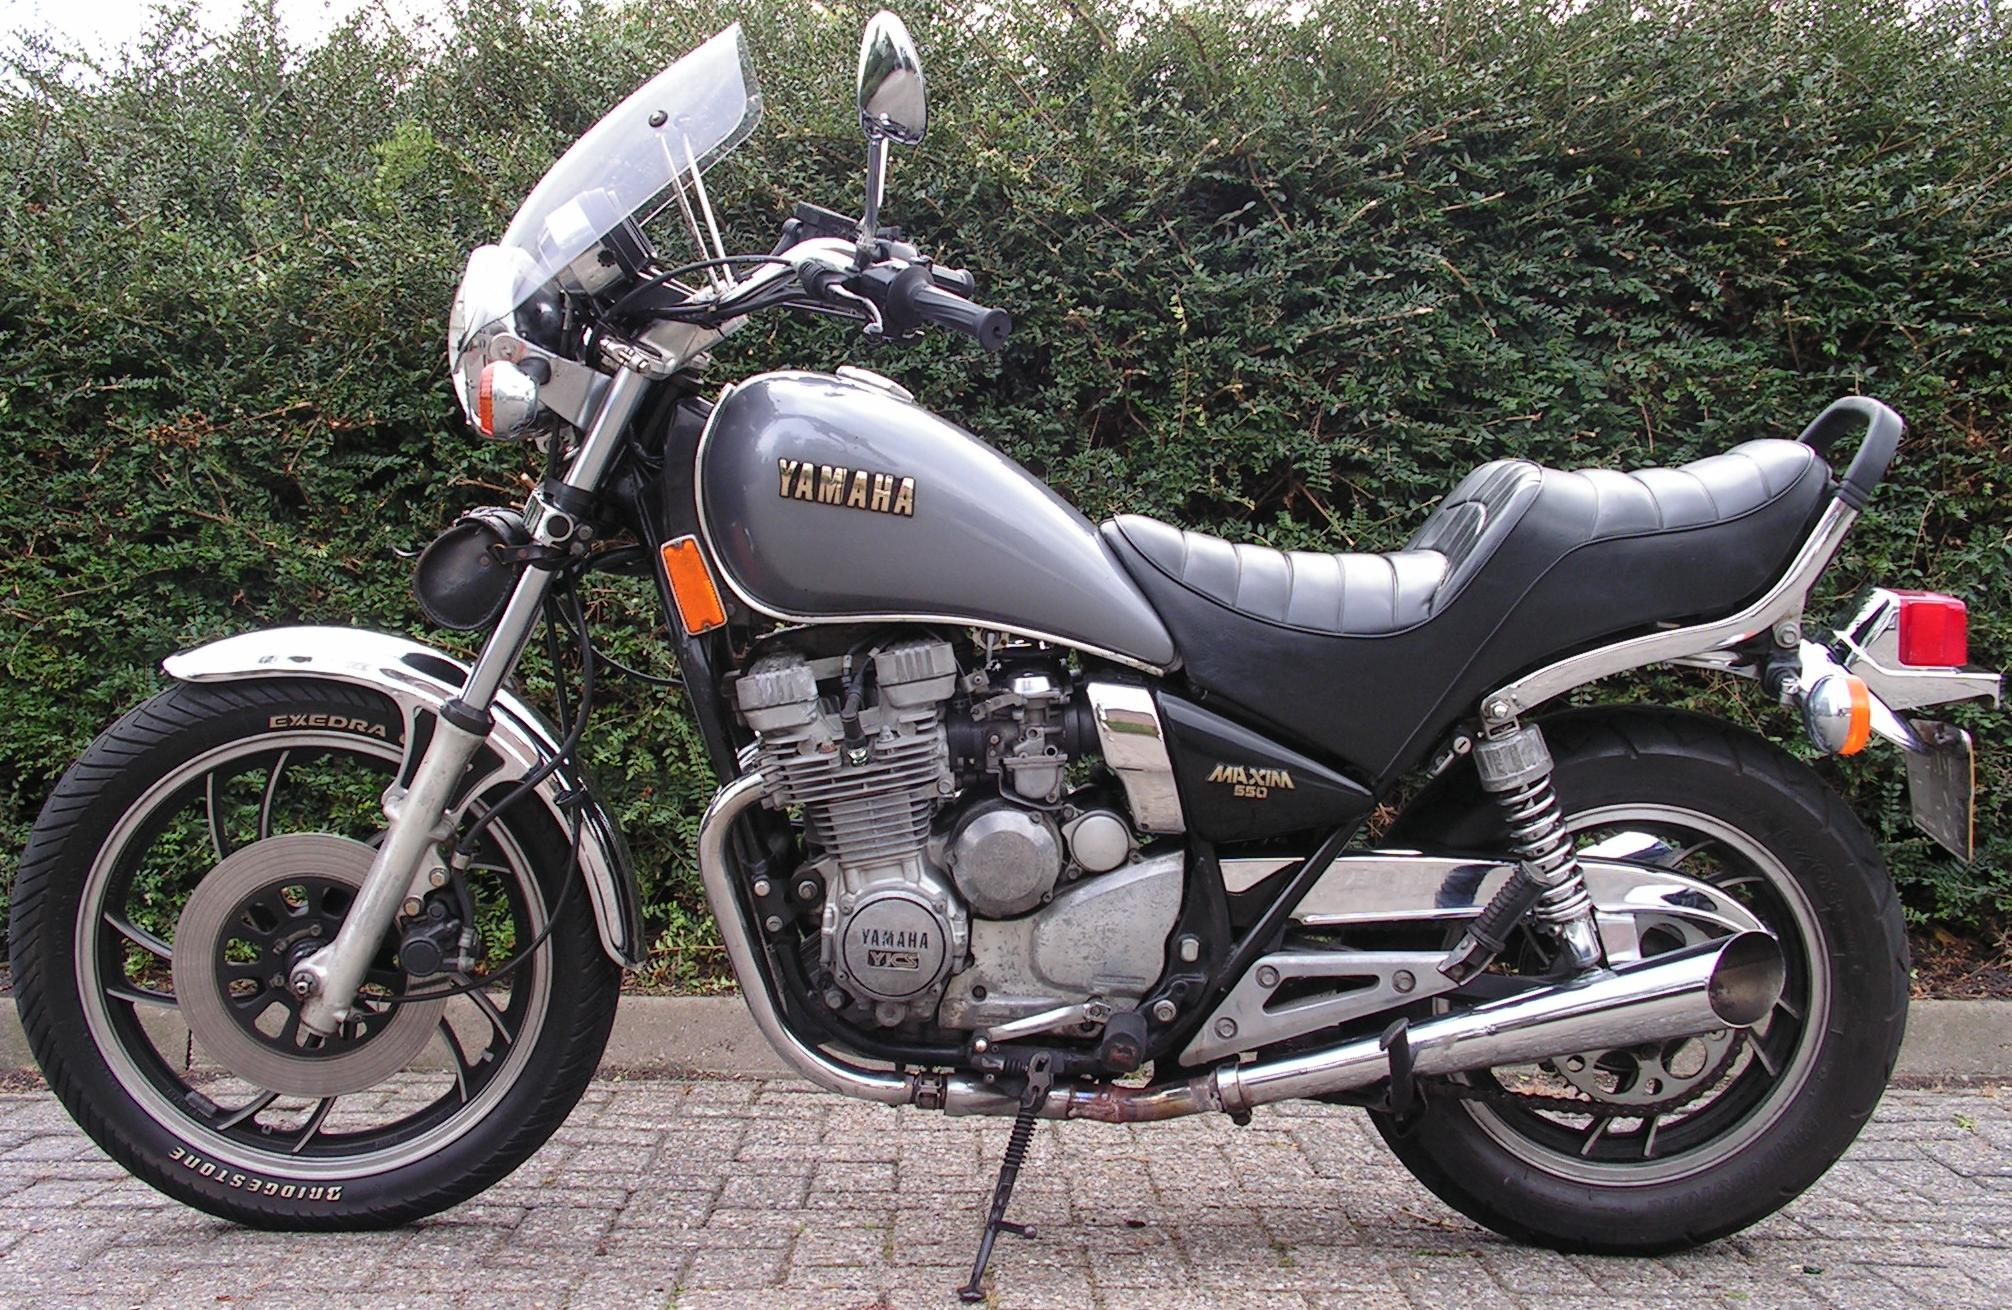 Considering as first bike motorcycles for 81 yamaha maxim 550